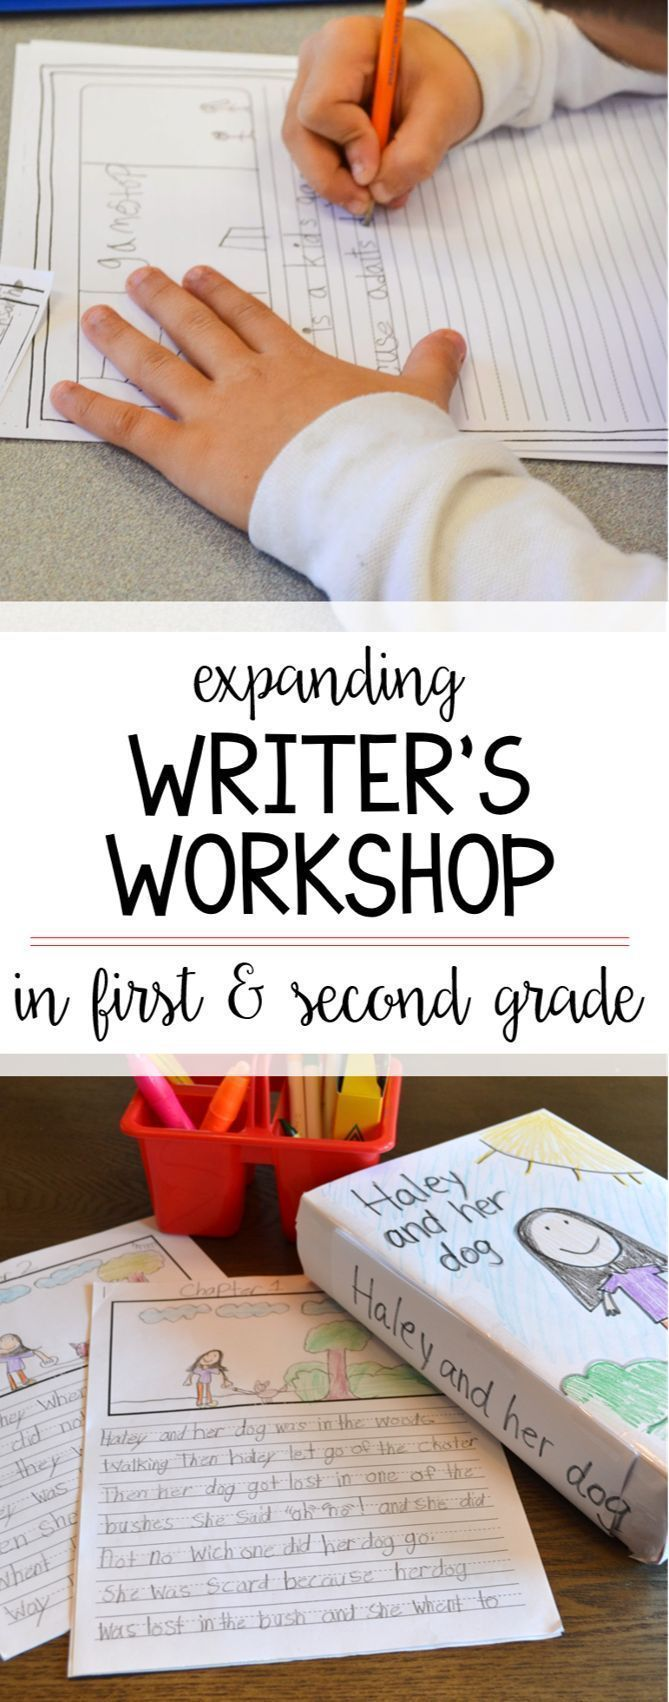 Lessons and units for expanding writer's workshop in first and second grade. Students write how to books, realistic fiction stories, and reviews for their favorite things!